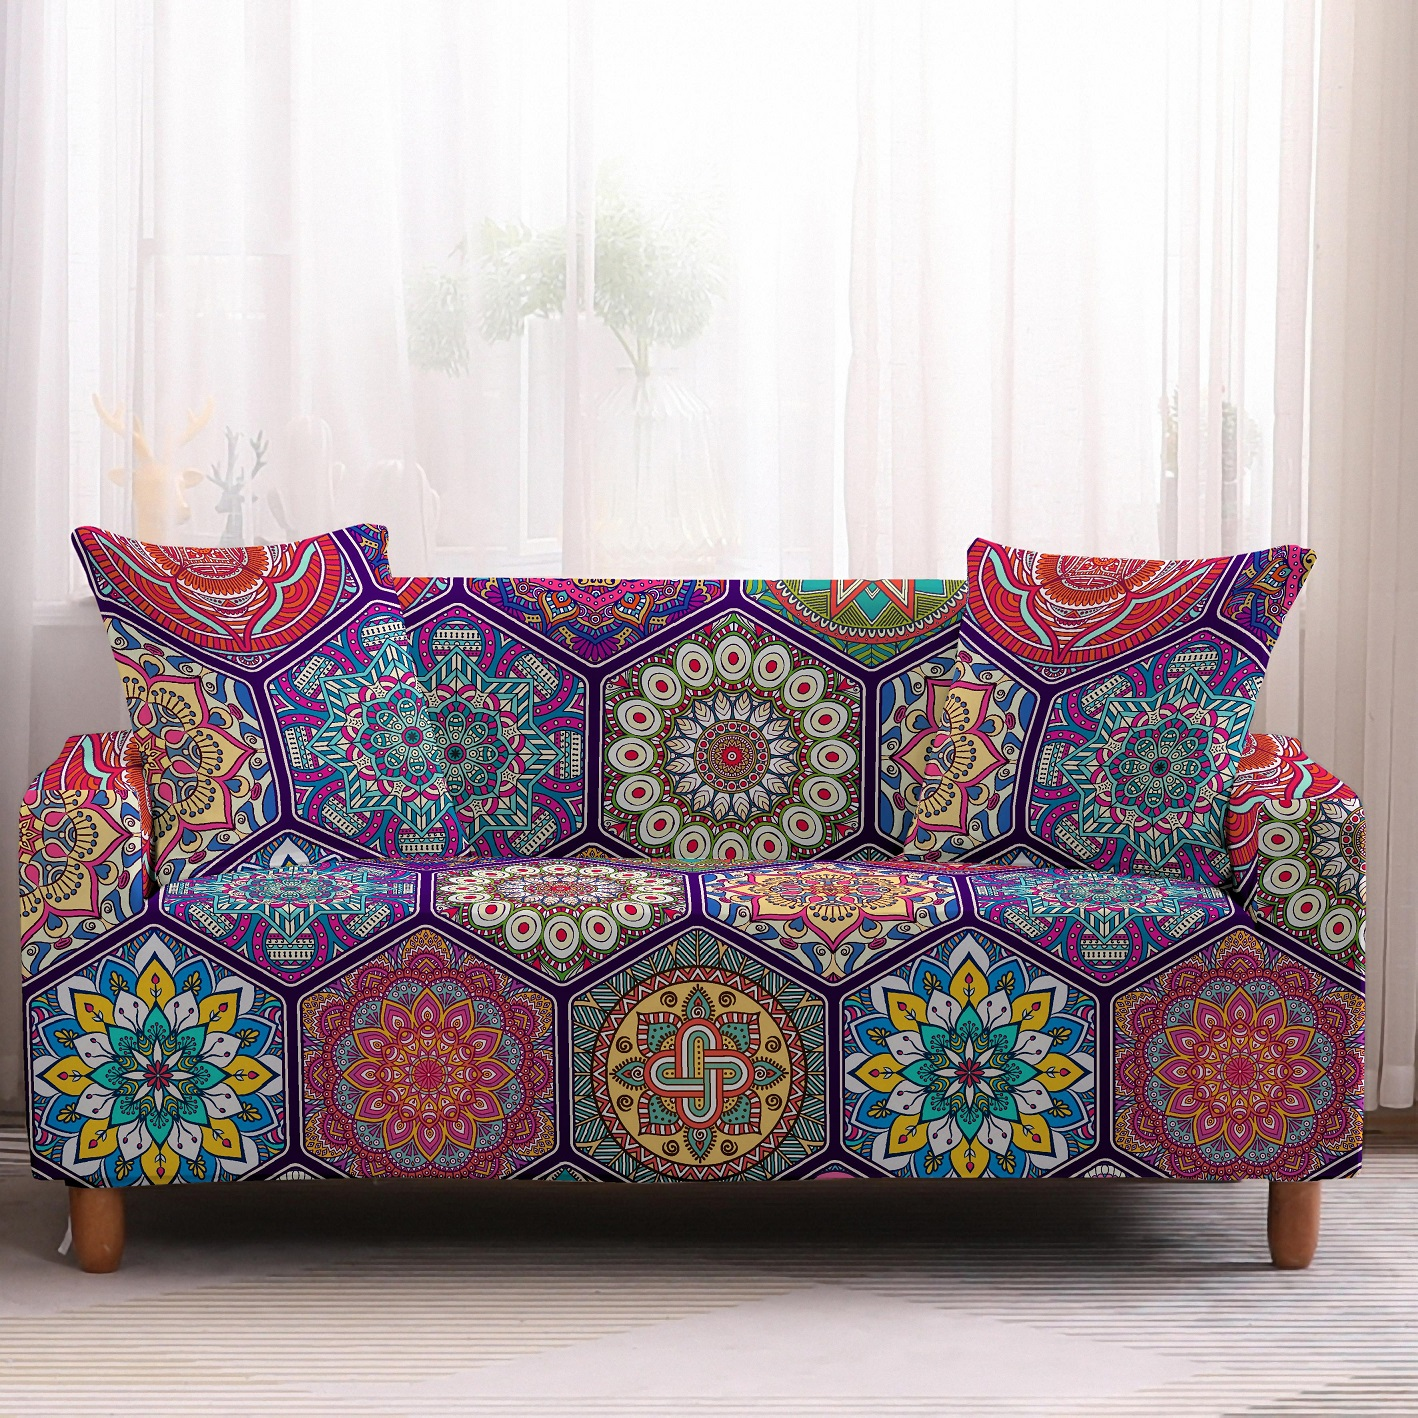 Bohemia Slipcovers Sofa Cover in Mandala Pattern to Protect Living Room Furniture from Stains and Dust 9